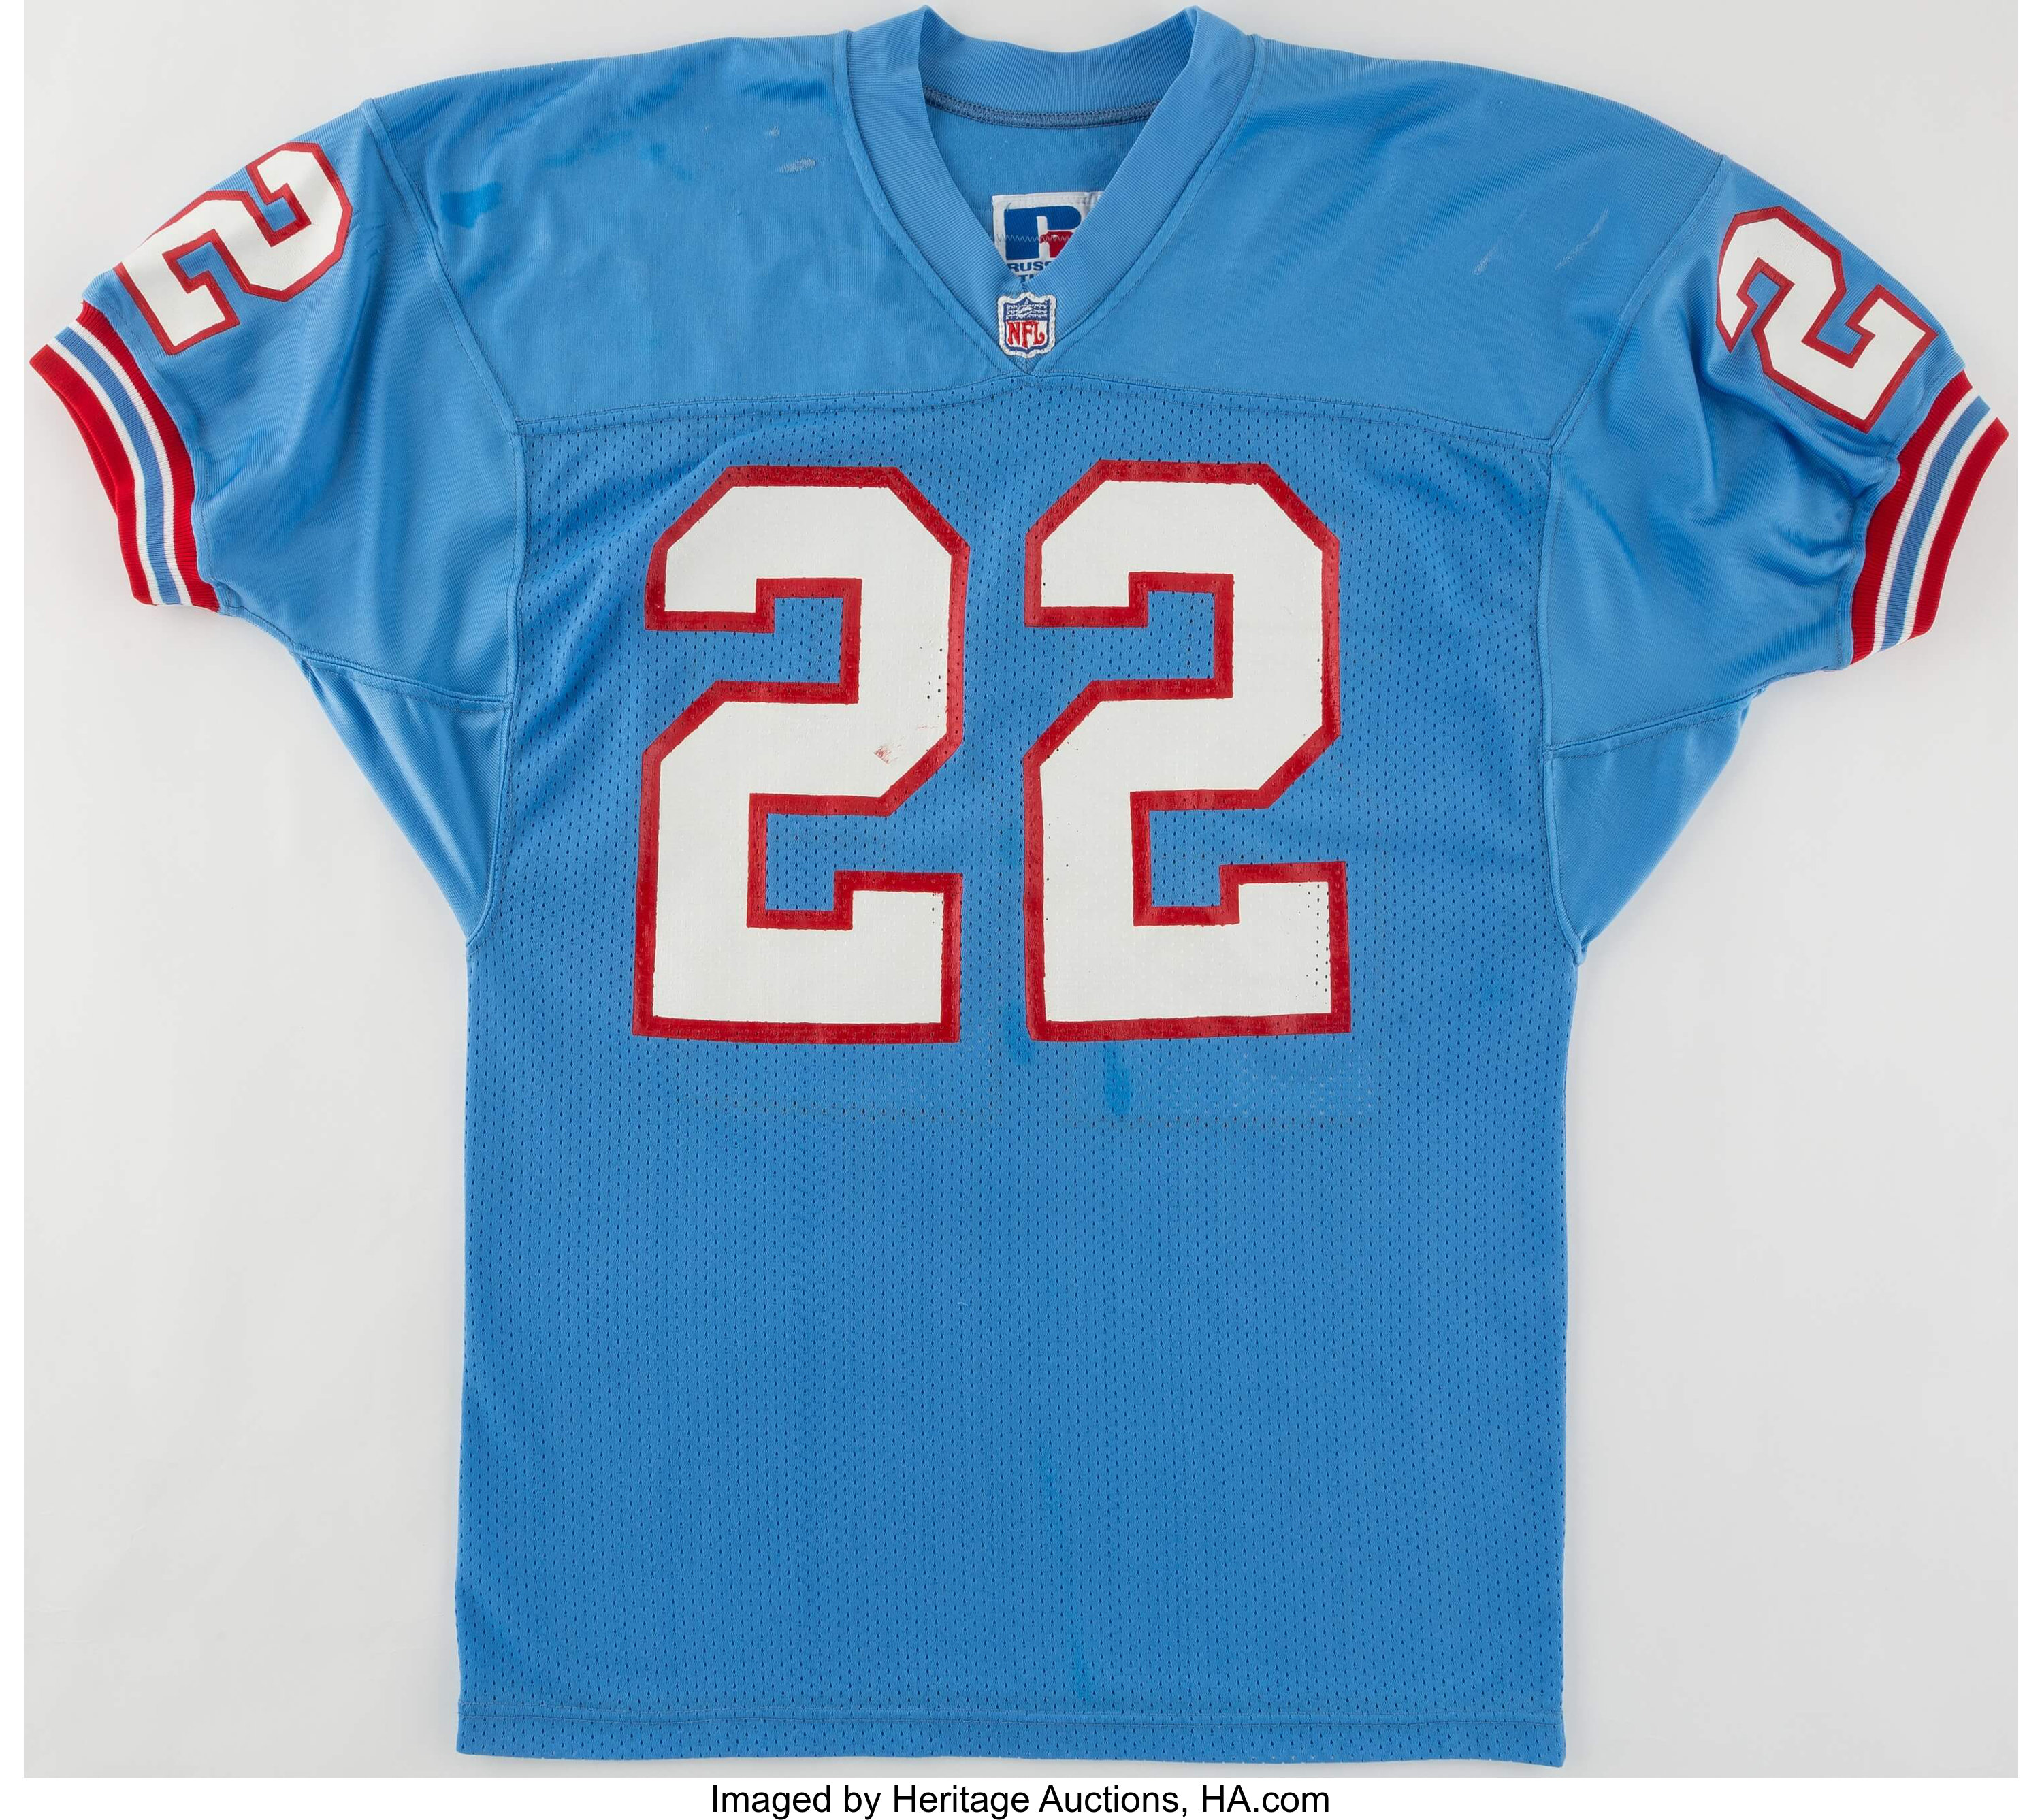 1990 Reider Houston Oilers Game Worn Jersey Football Lot 43238 Heritage Auctions